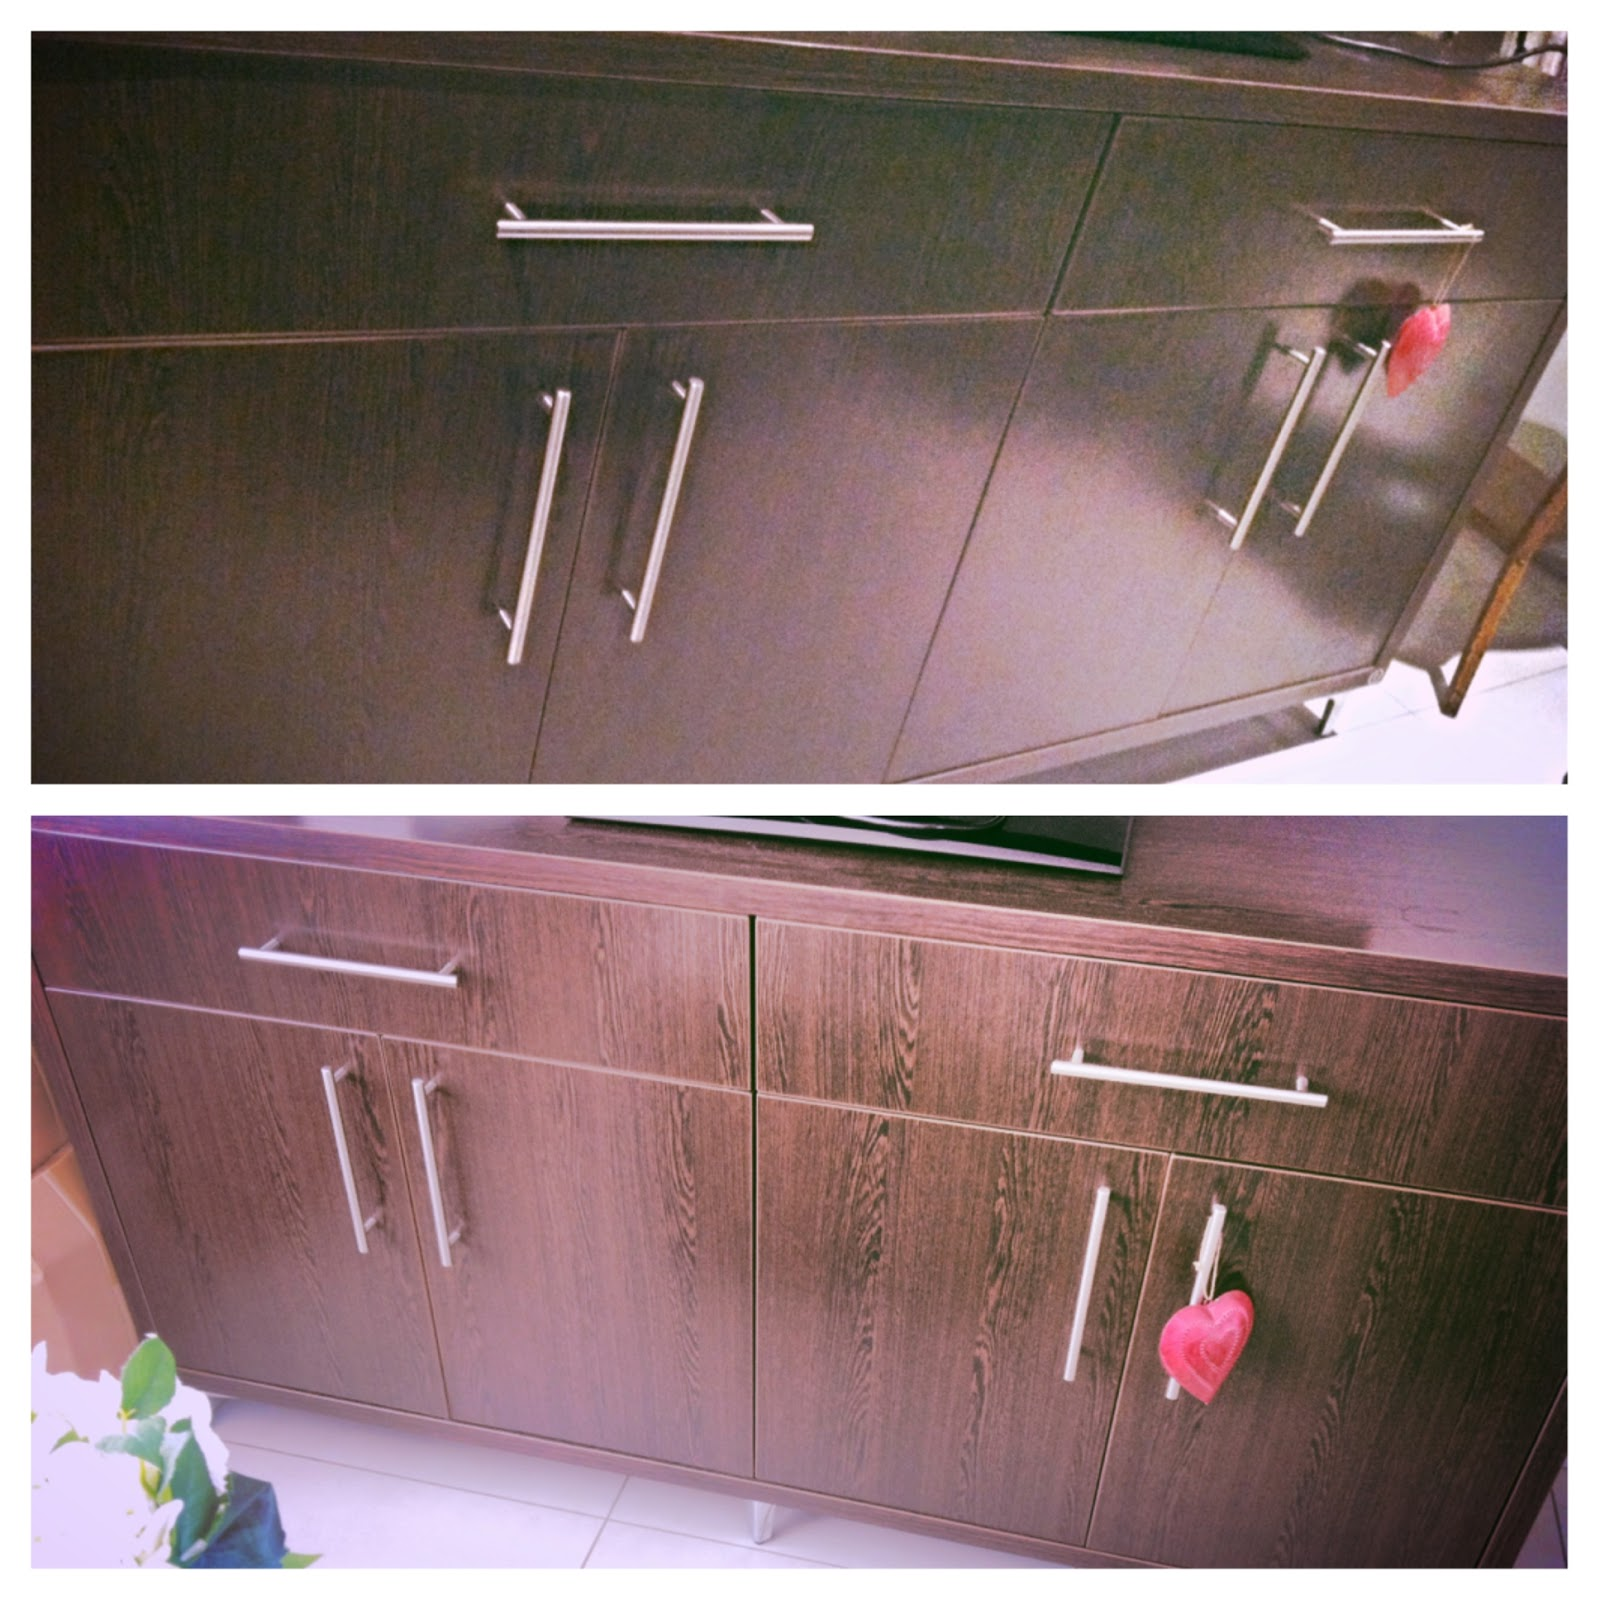 laminate furniture makeover. Ok So Here Goes My Version Of How To Paint Laminated Wood (the Cheap And Easy Way): Laminate Furniture Makeover D